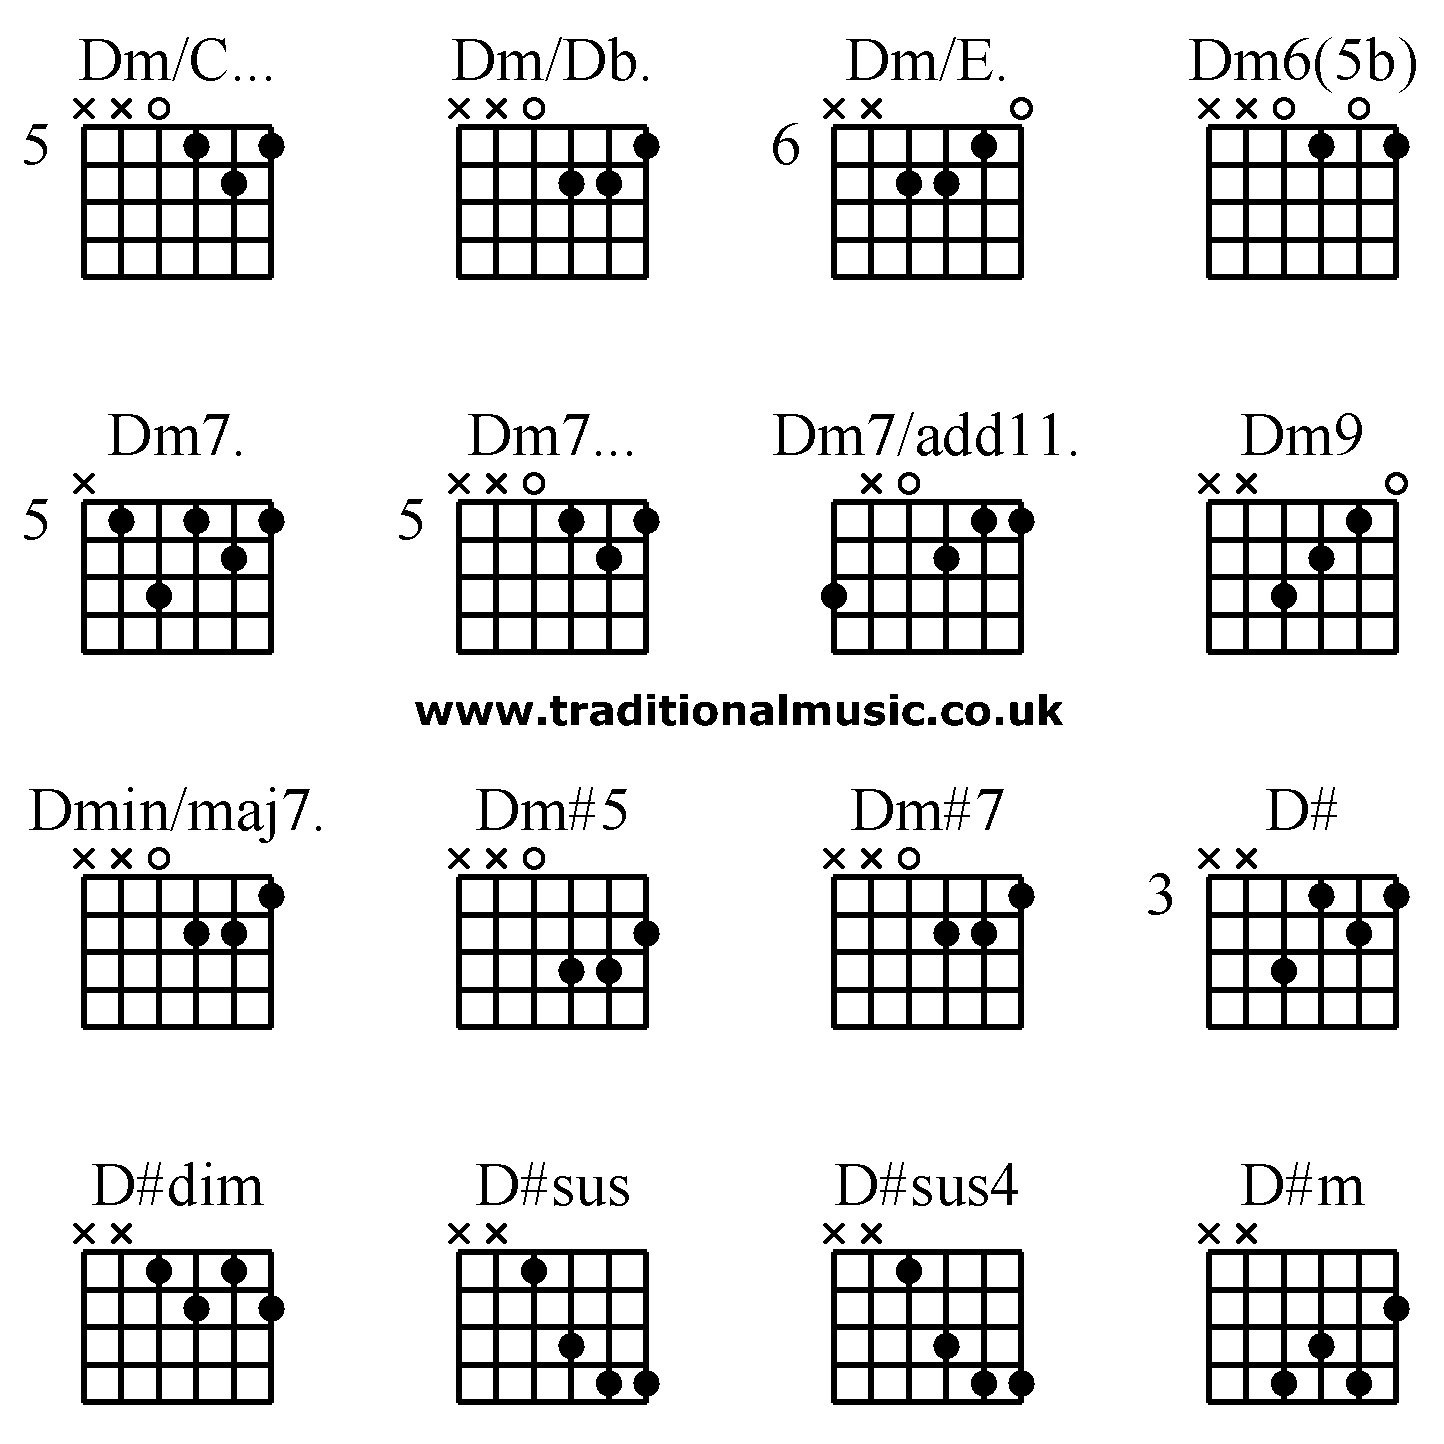 Guitar Chords Advanced Dmc Dmdb Dme Dm65b Dm7 Dm7 Dm7